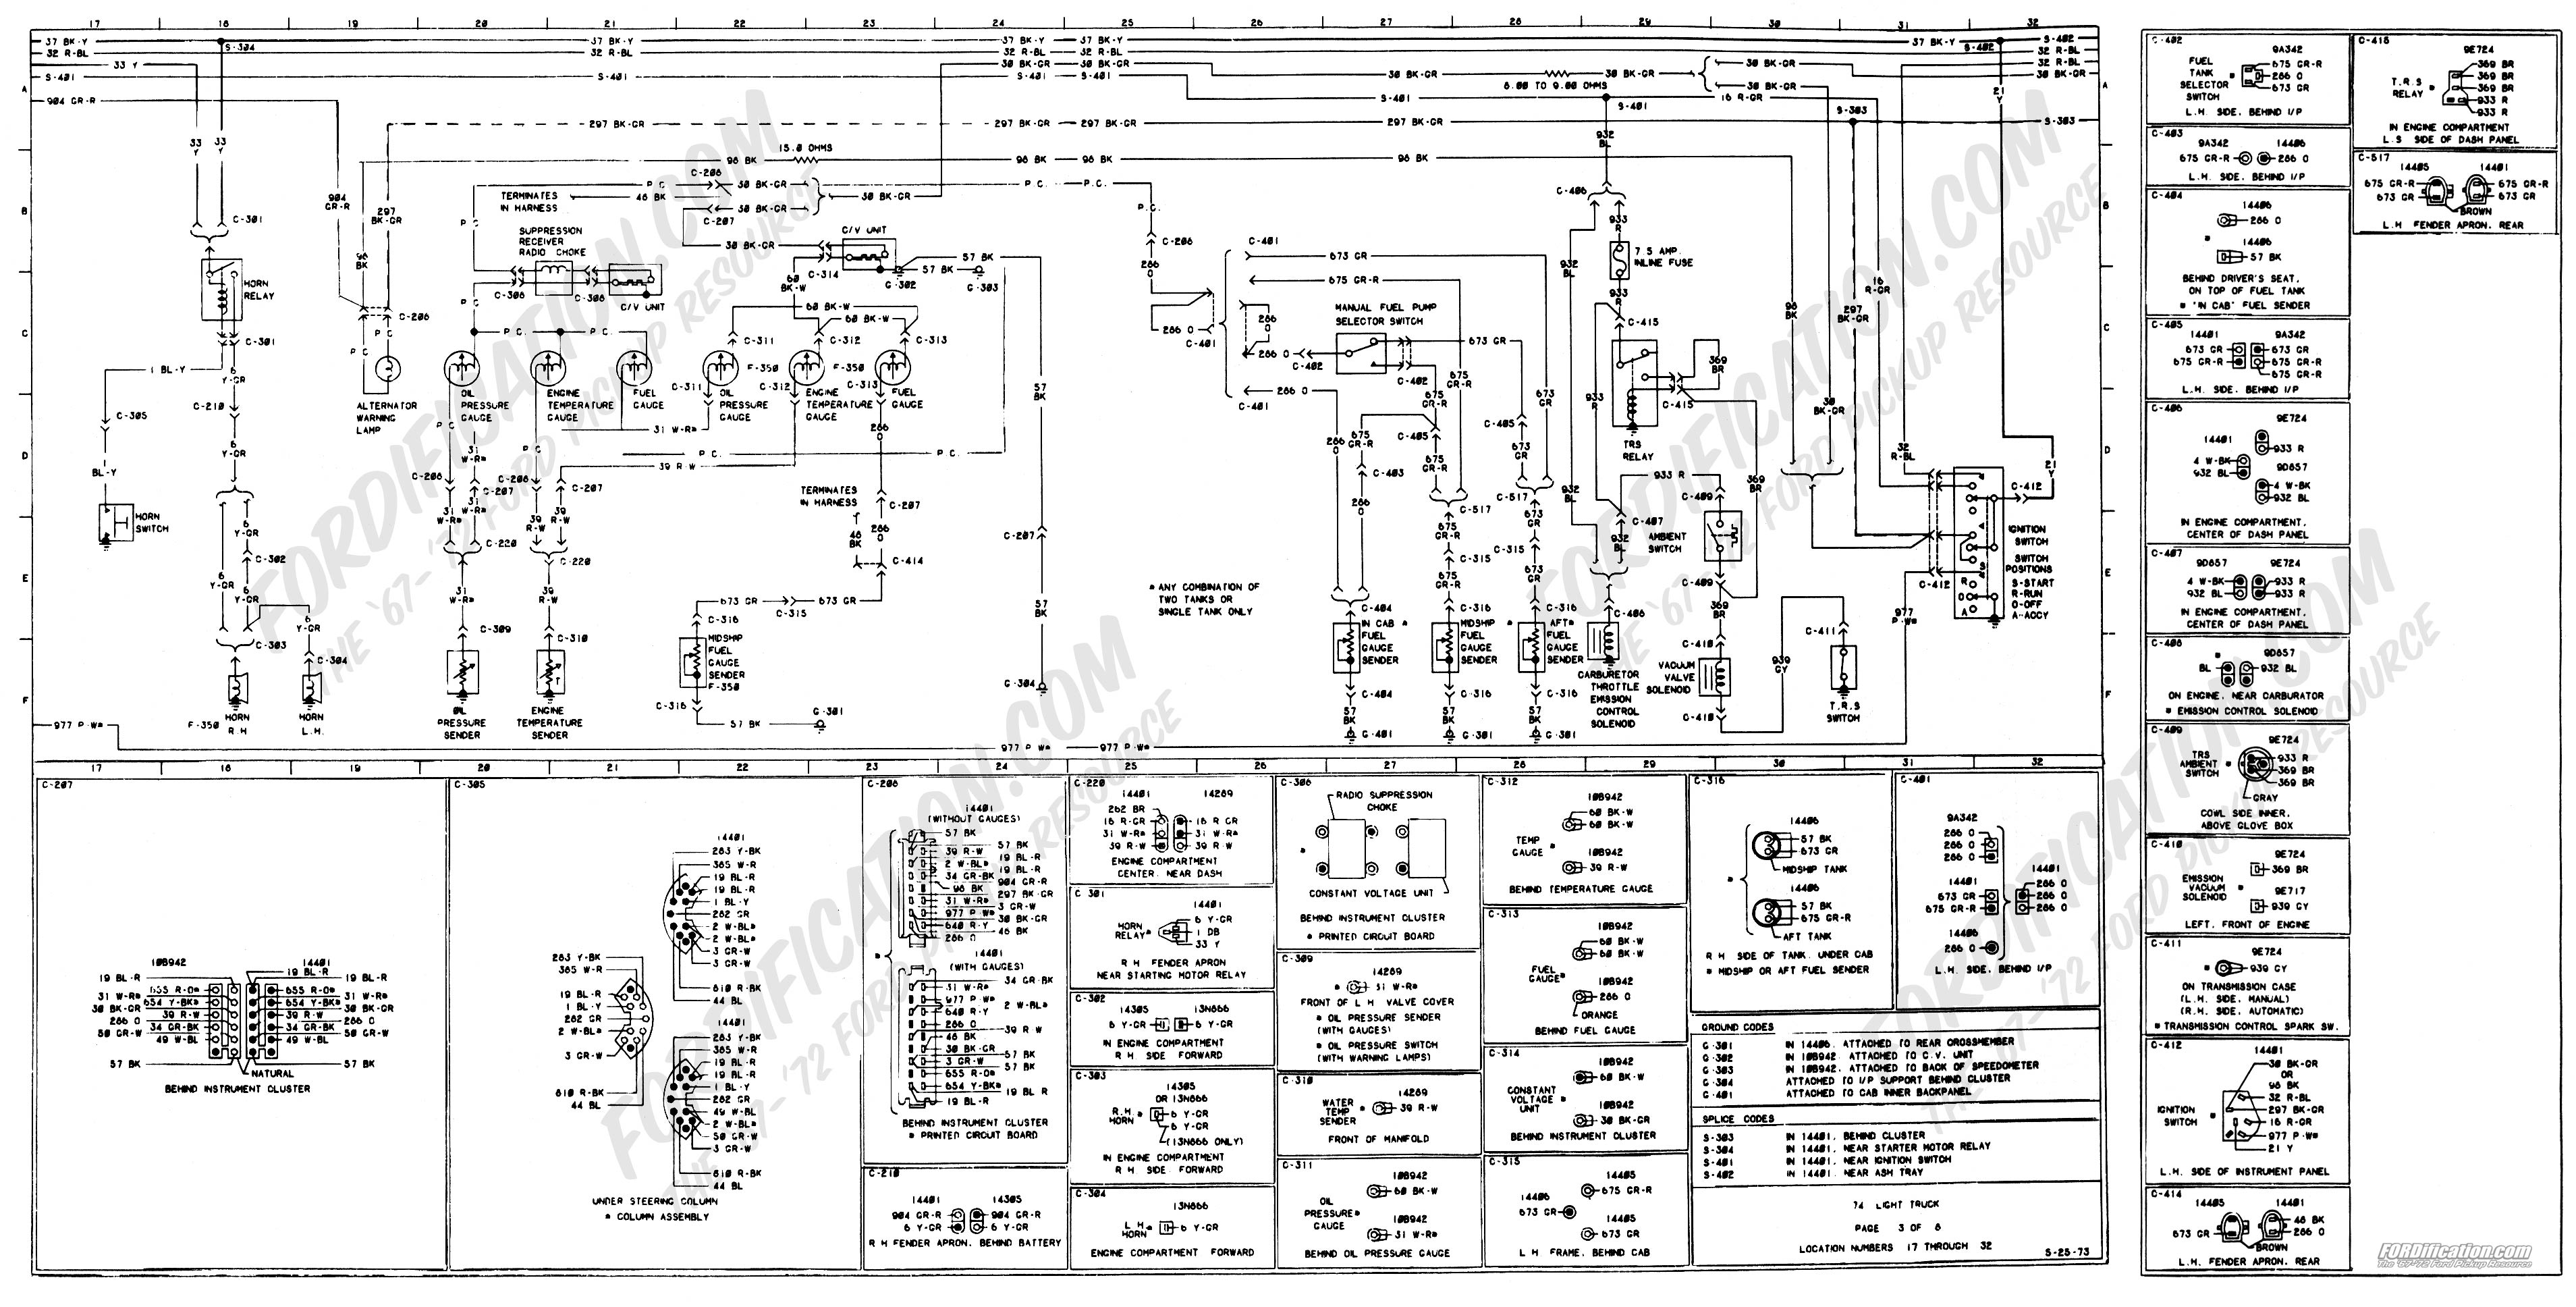 wiring_74master_3of8 1973 1979 ford truck wiring diagrams & schematics fordification net f250 wiring diagram at nearapp.co